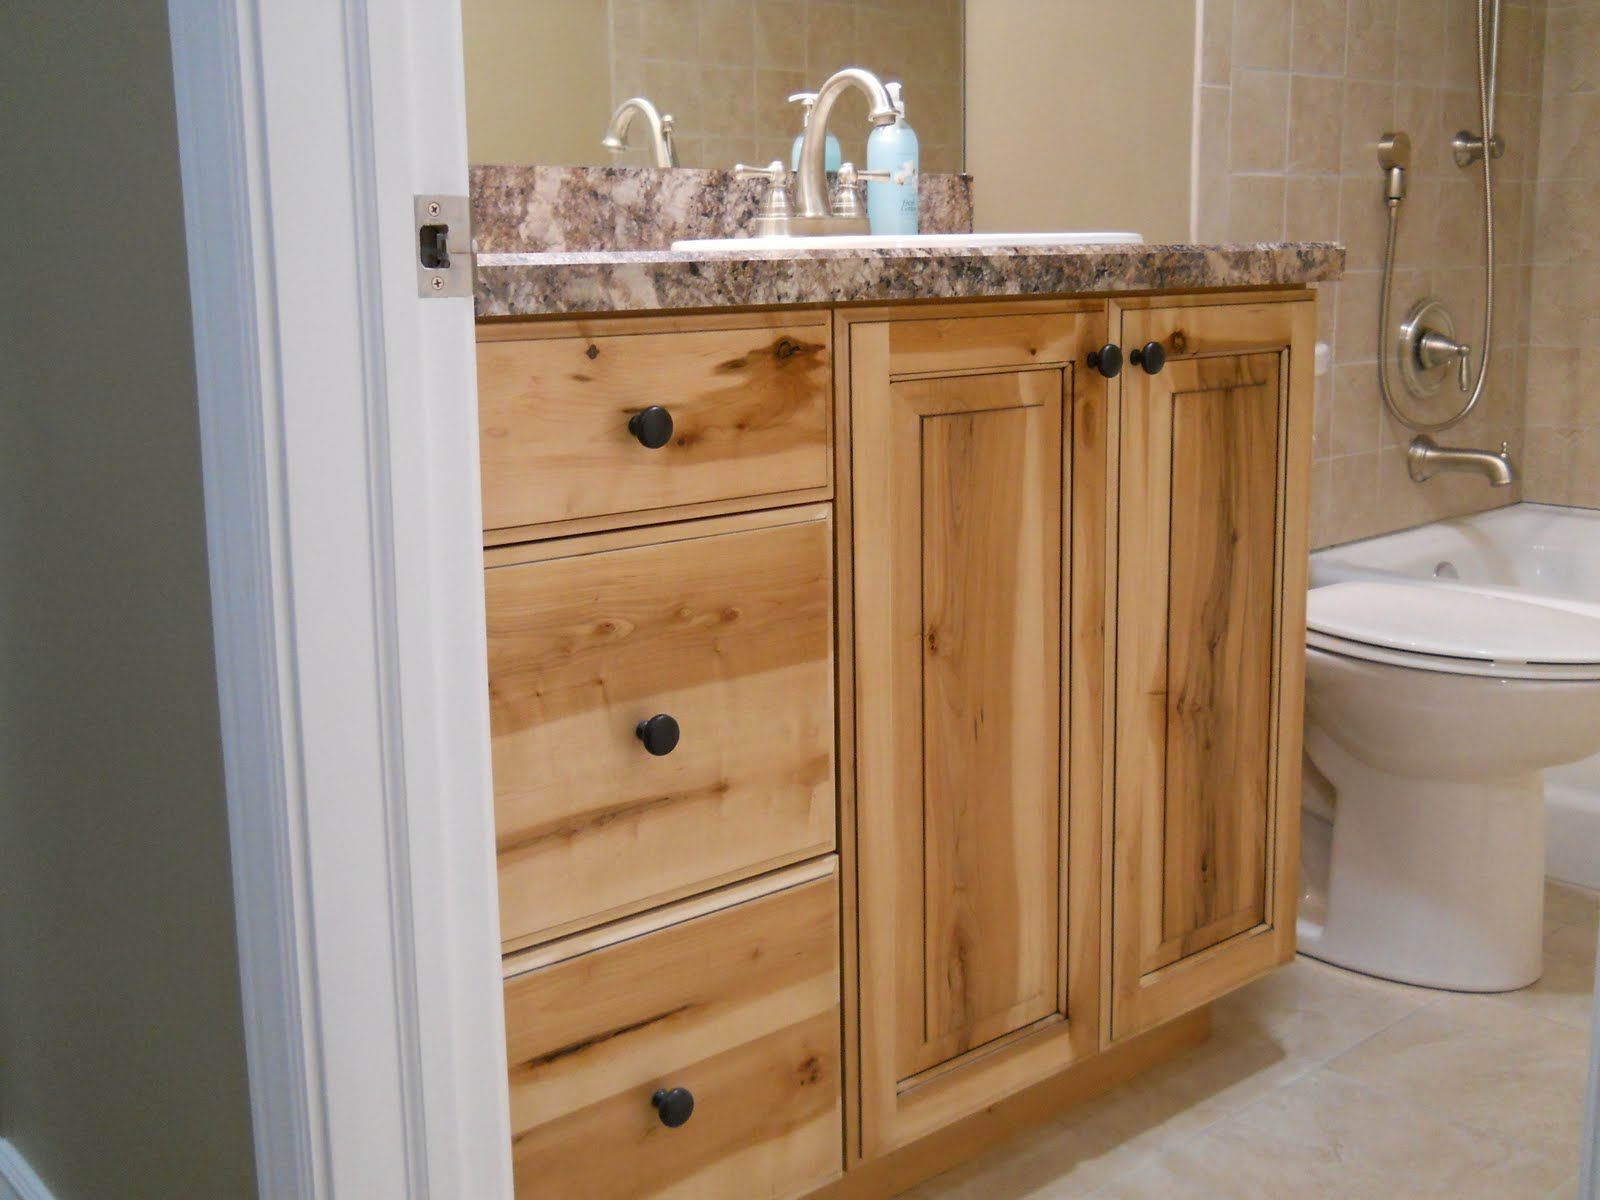 Knotty Pine Cabinet Rustic Bathroom Vanities Newly Finished Basement Cabinets In Rustic